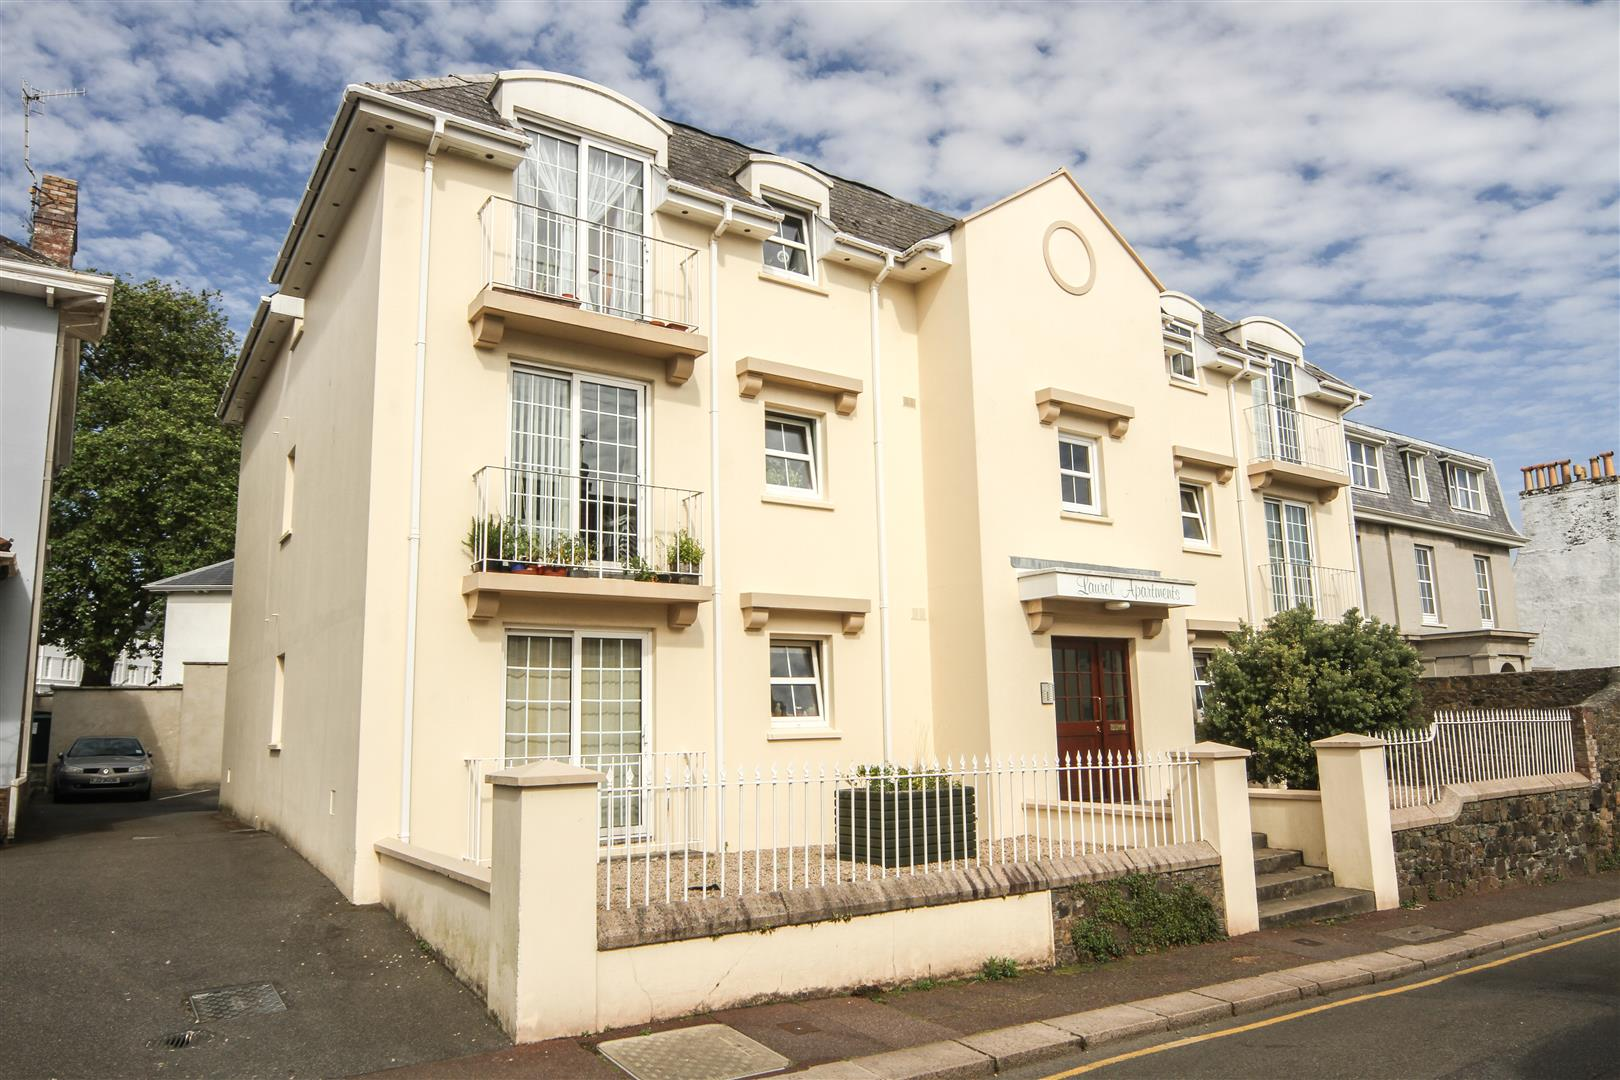 Clarendon Road, St. Helier, Jersey